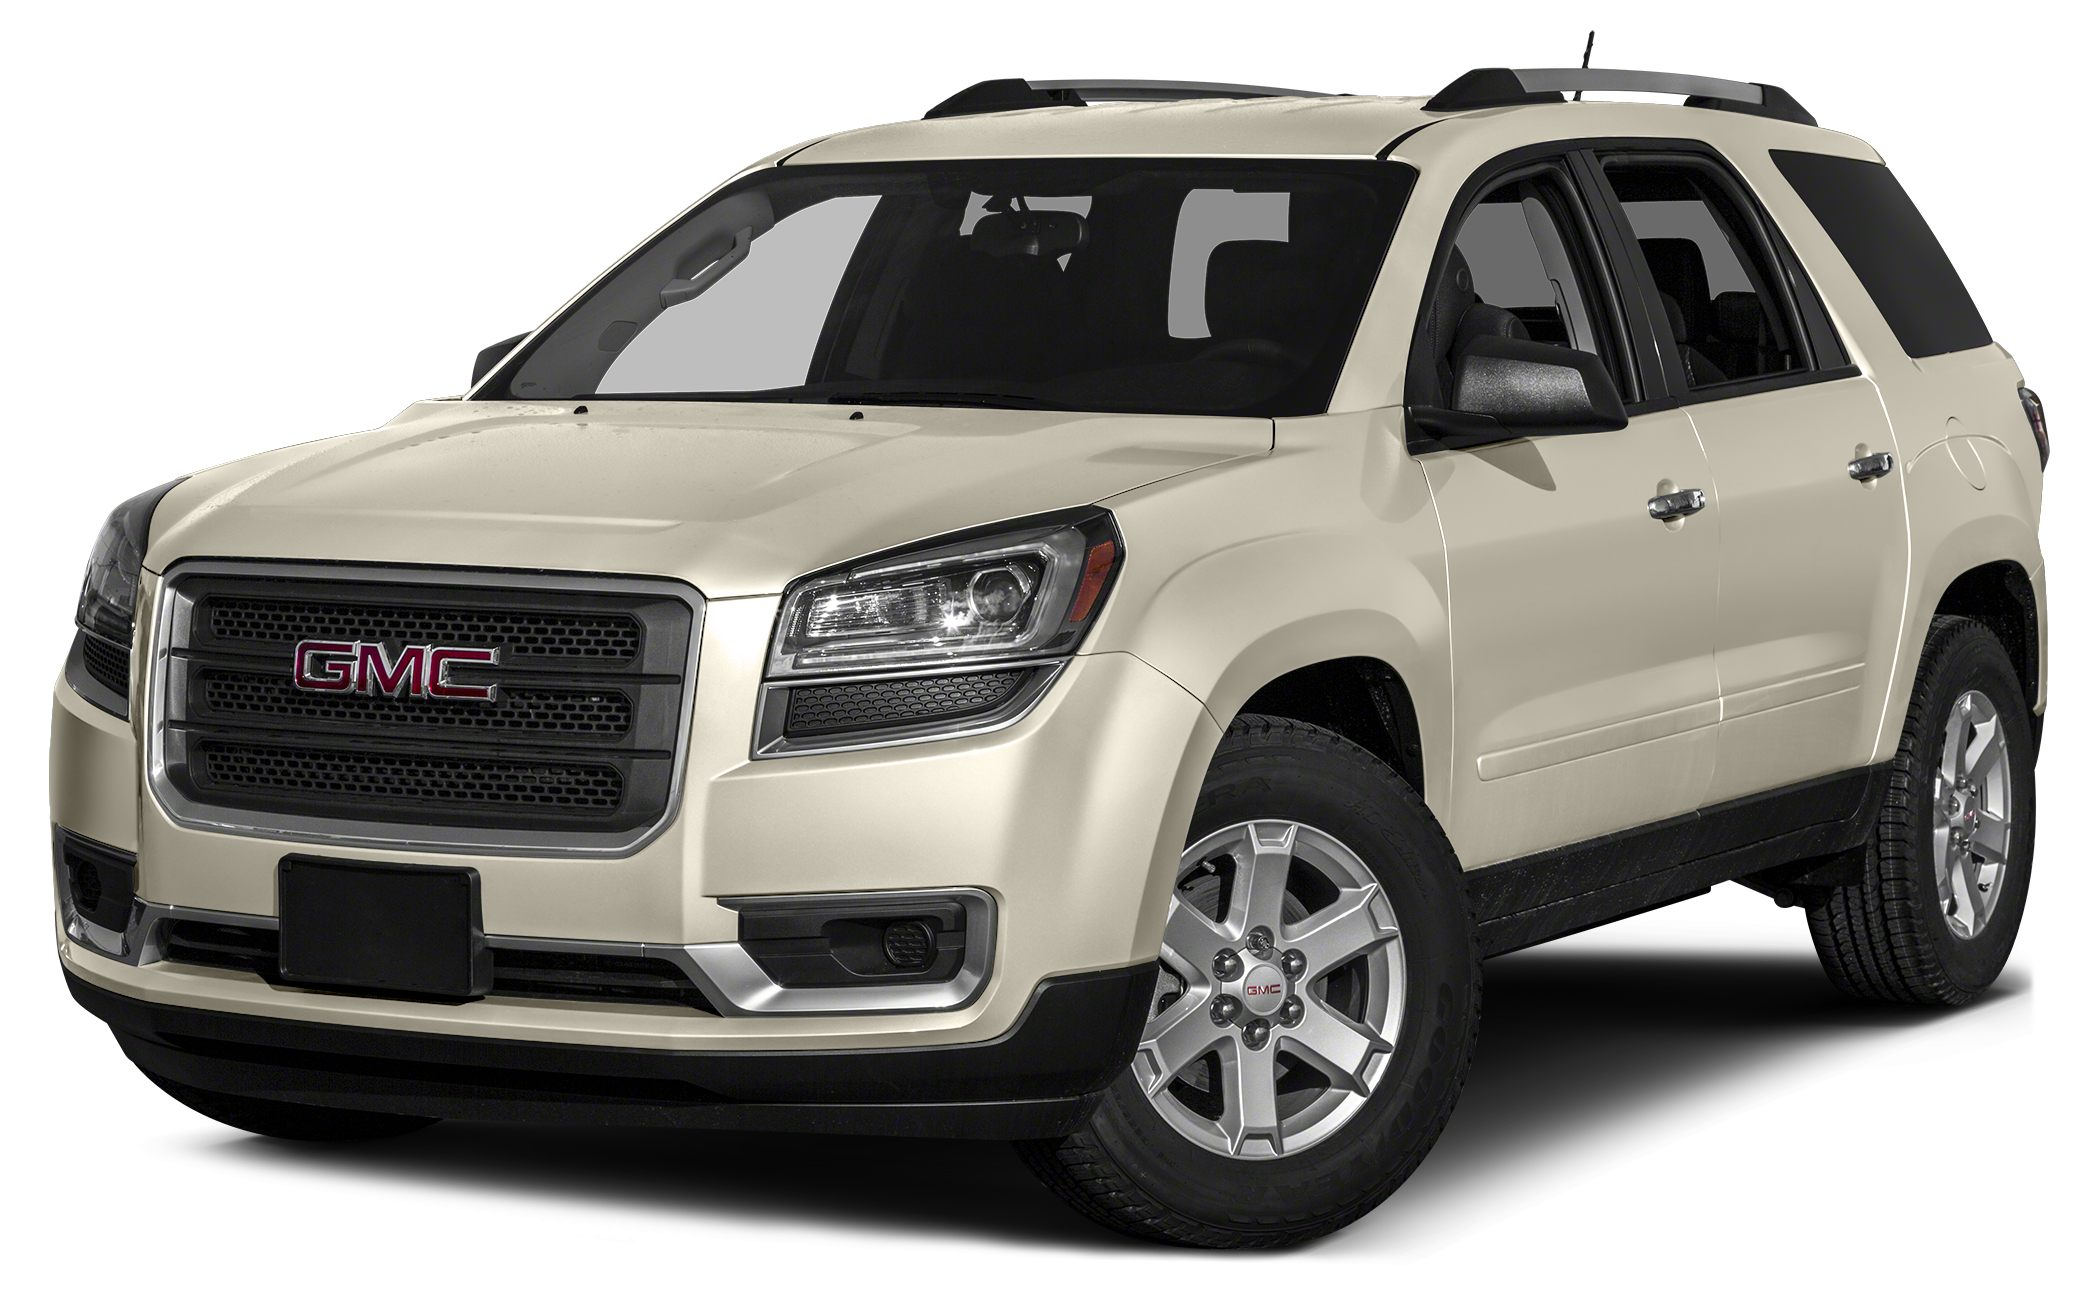 2013 GMC Acadia SLT-1 CARFAX 1-Owner Excellent Condition EPA 24 MPG Hwy17 MPG City PRICED TO